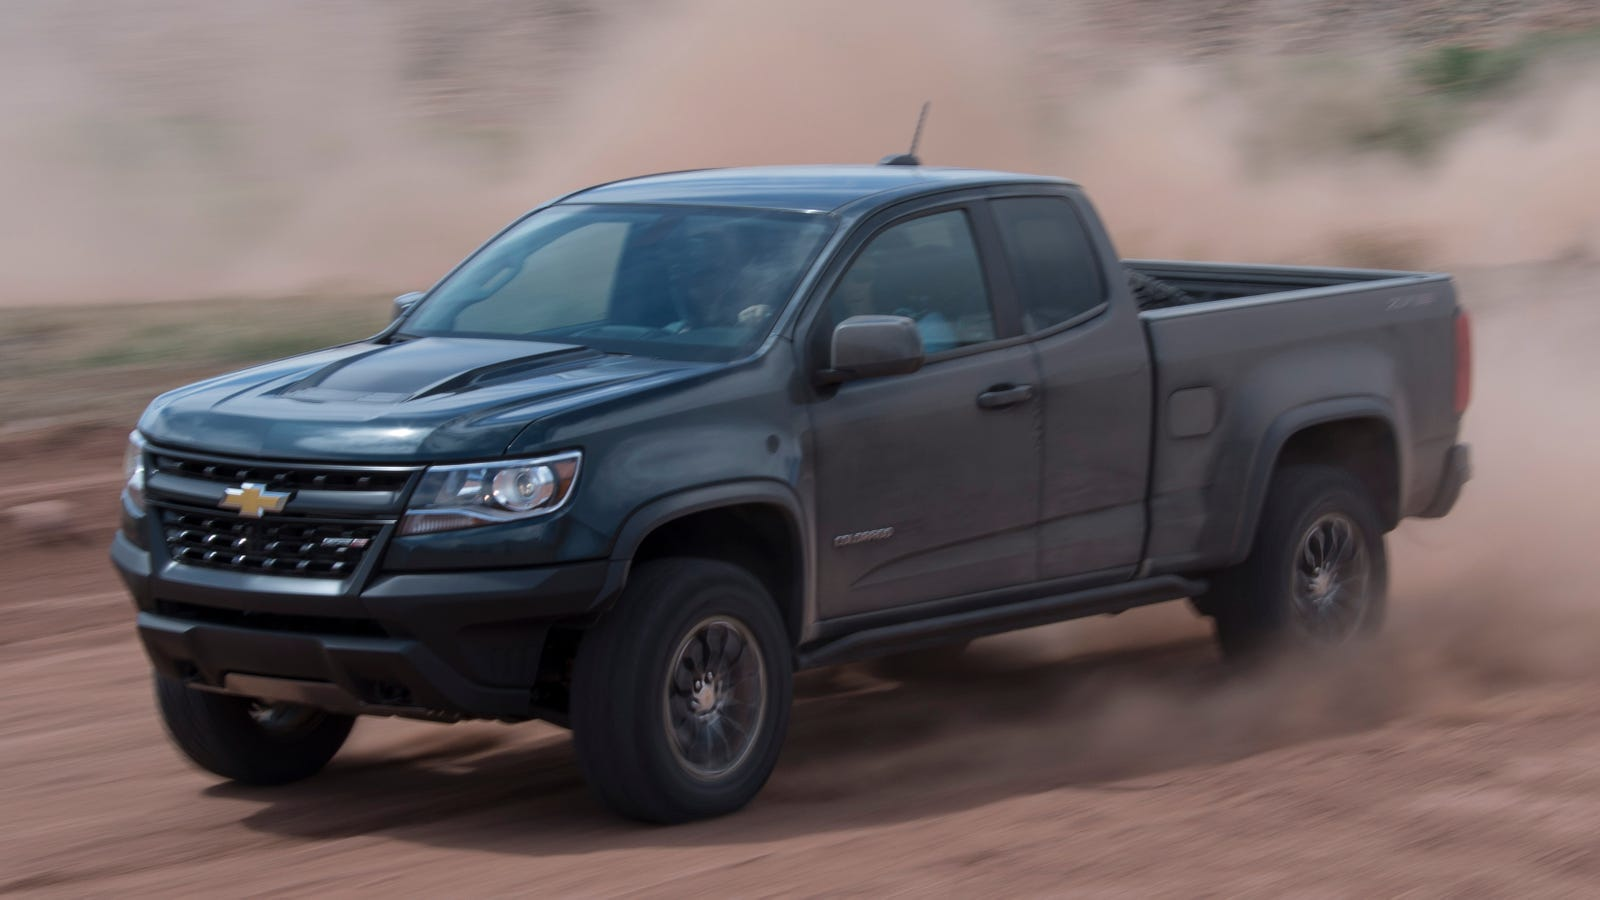 What Do You Want To Know About The 2017 Chevy Colorado ZR2?